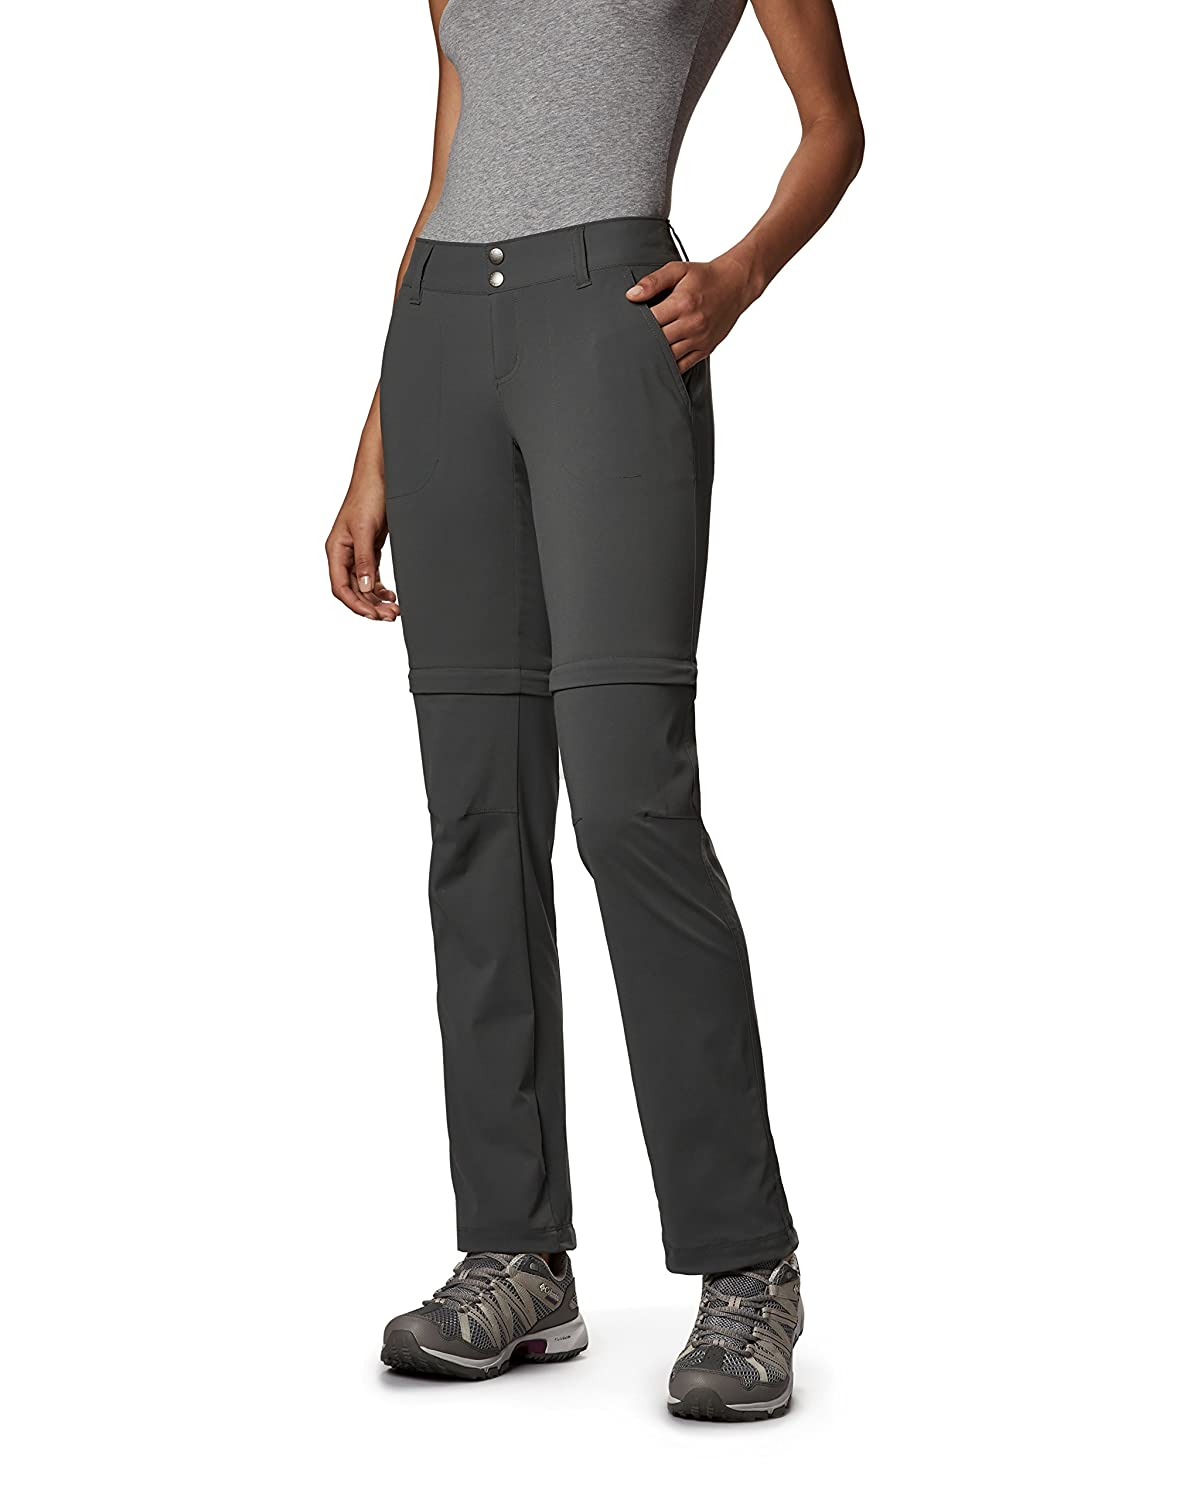 Columbia Women's Saturday Trail II Convertible Pant Columbia (Sporting Goods) 1579851